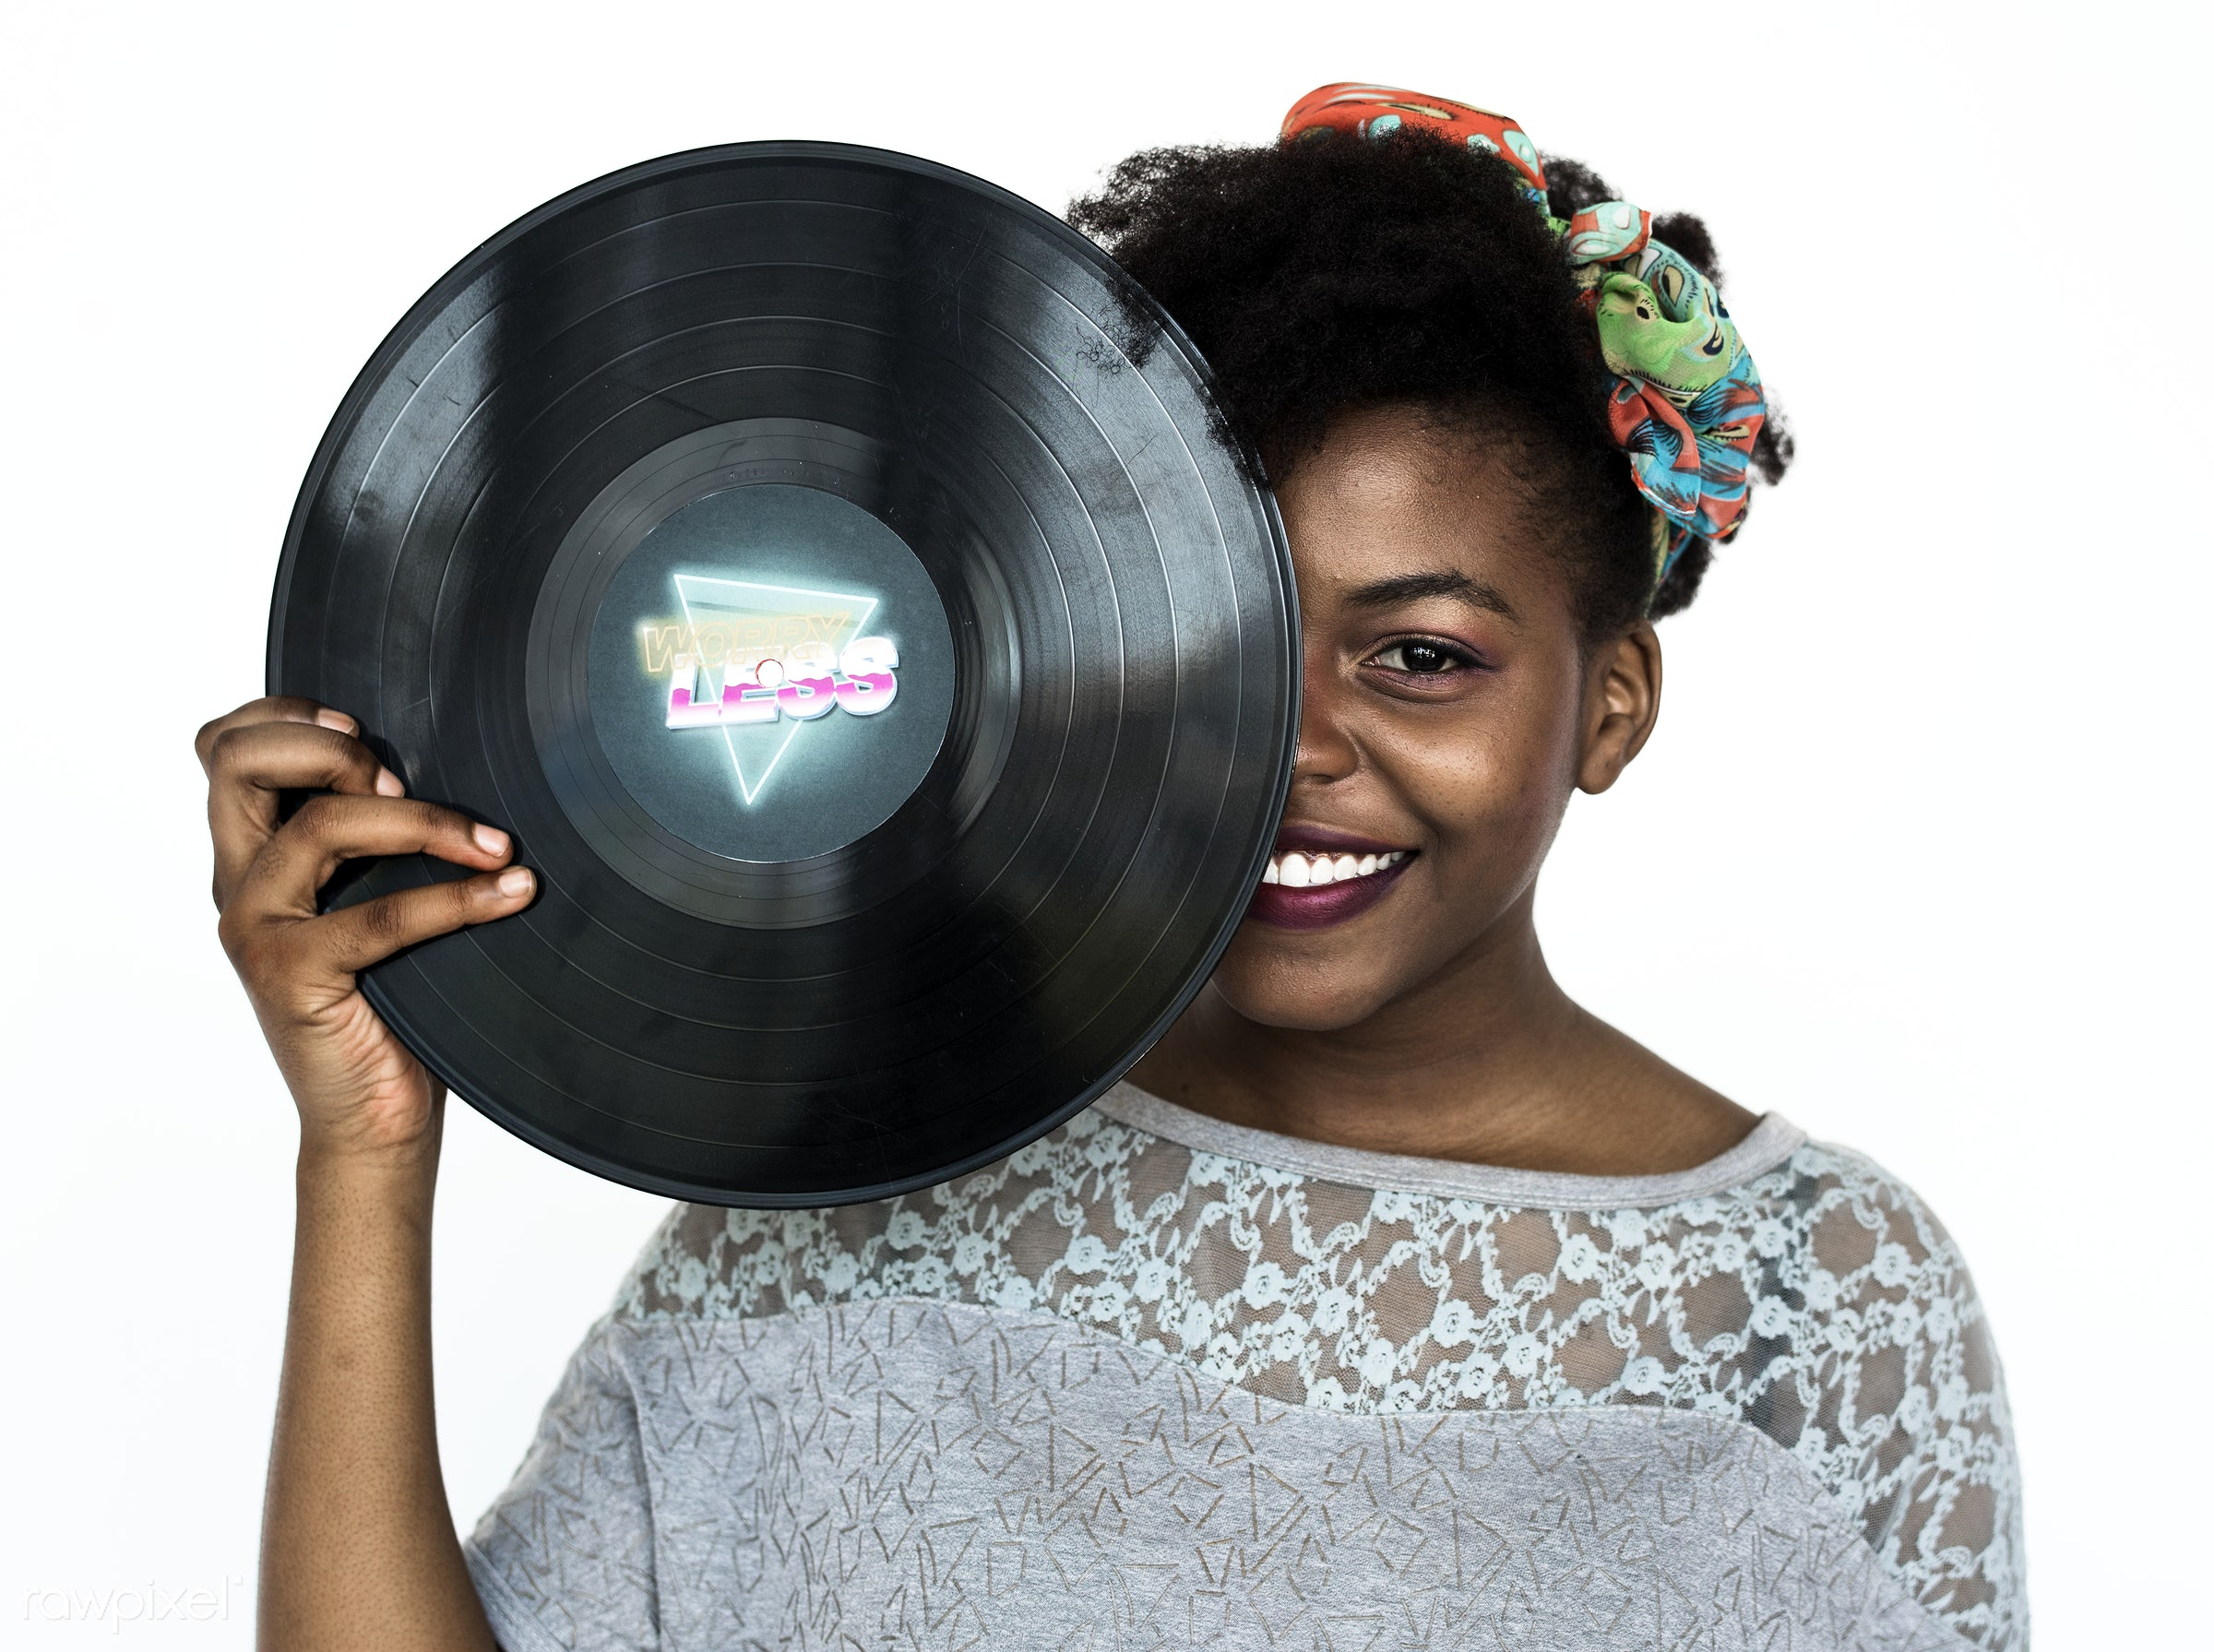 Portrait of an African woman holding a Phonograph record - music, vintage, adult, african, alone, black, casual, cheerful,...